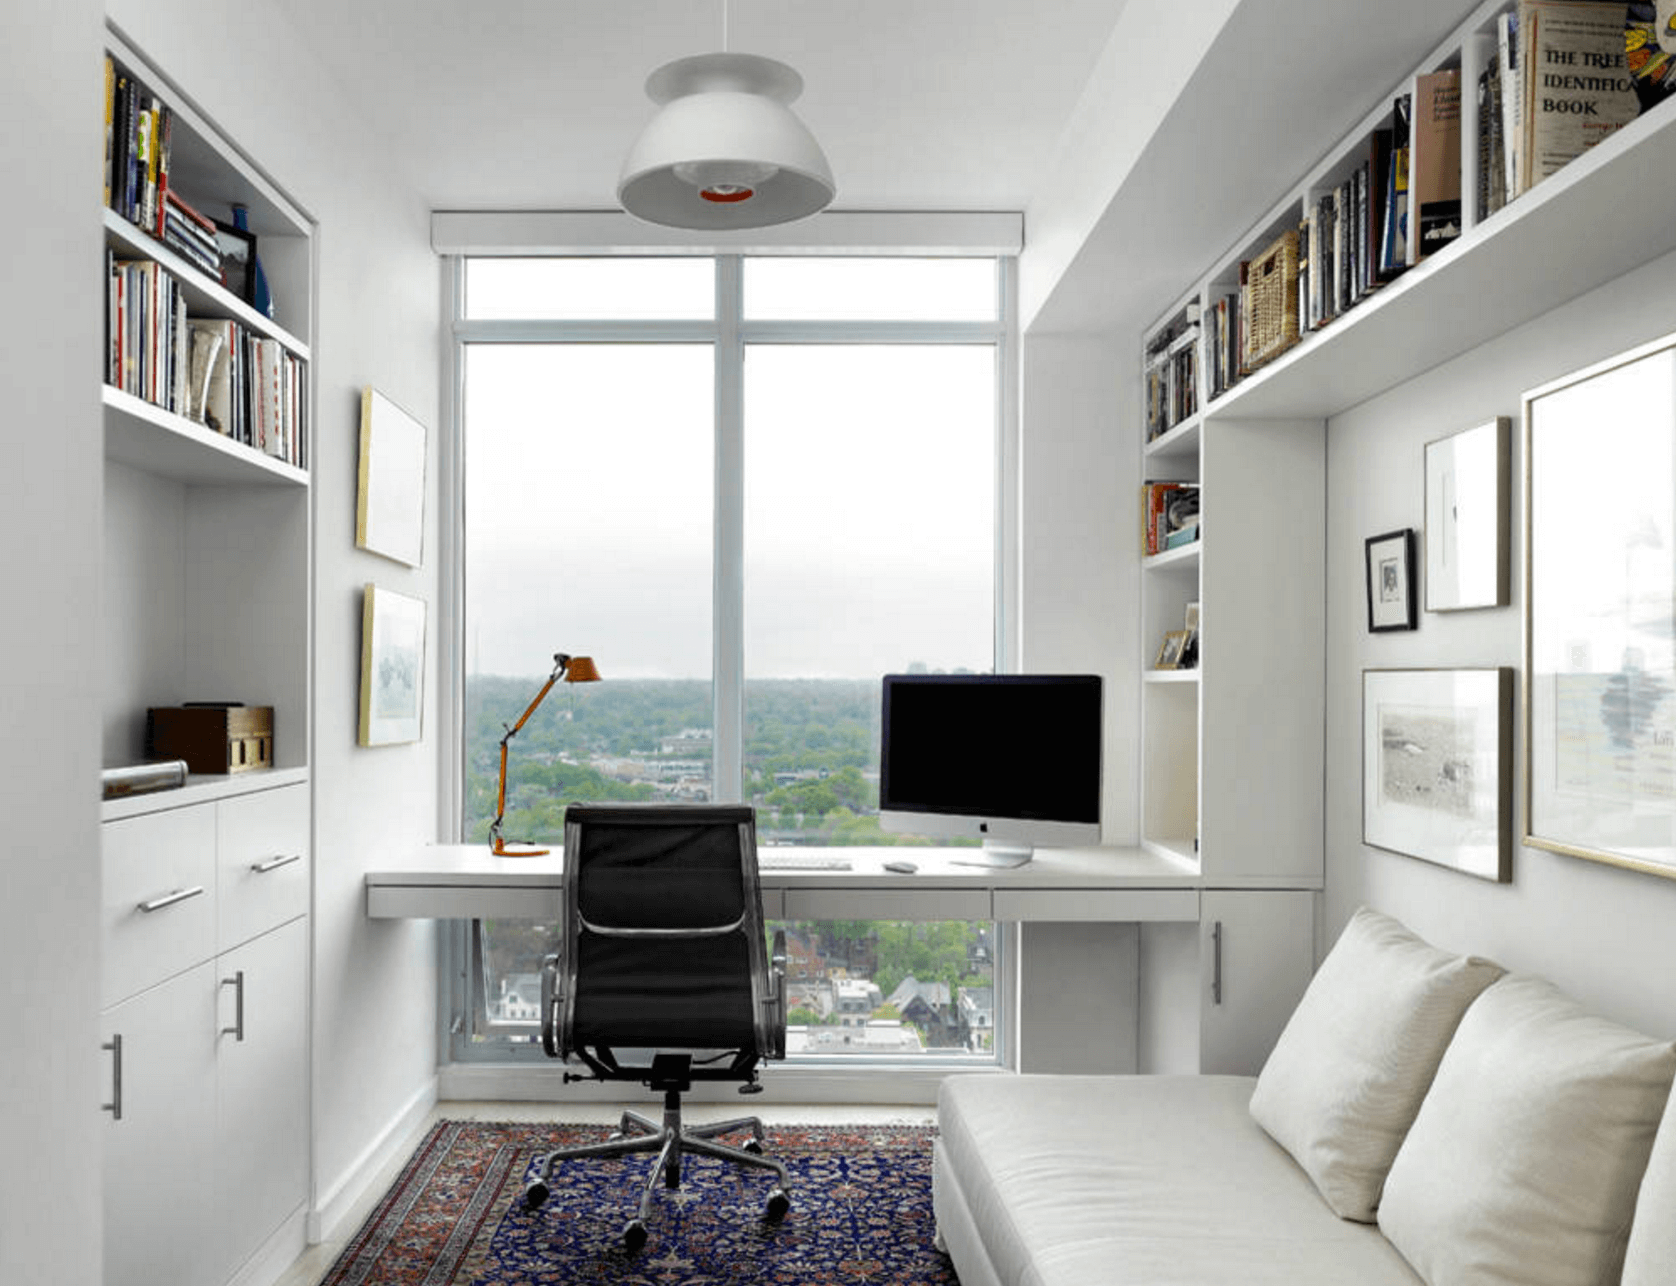 4 Modern and Chic Ideas for Your Home Office - Freshome